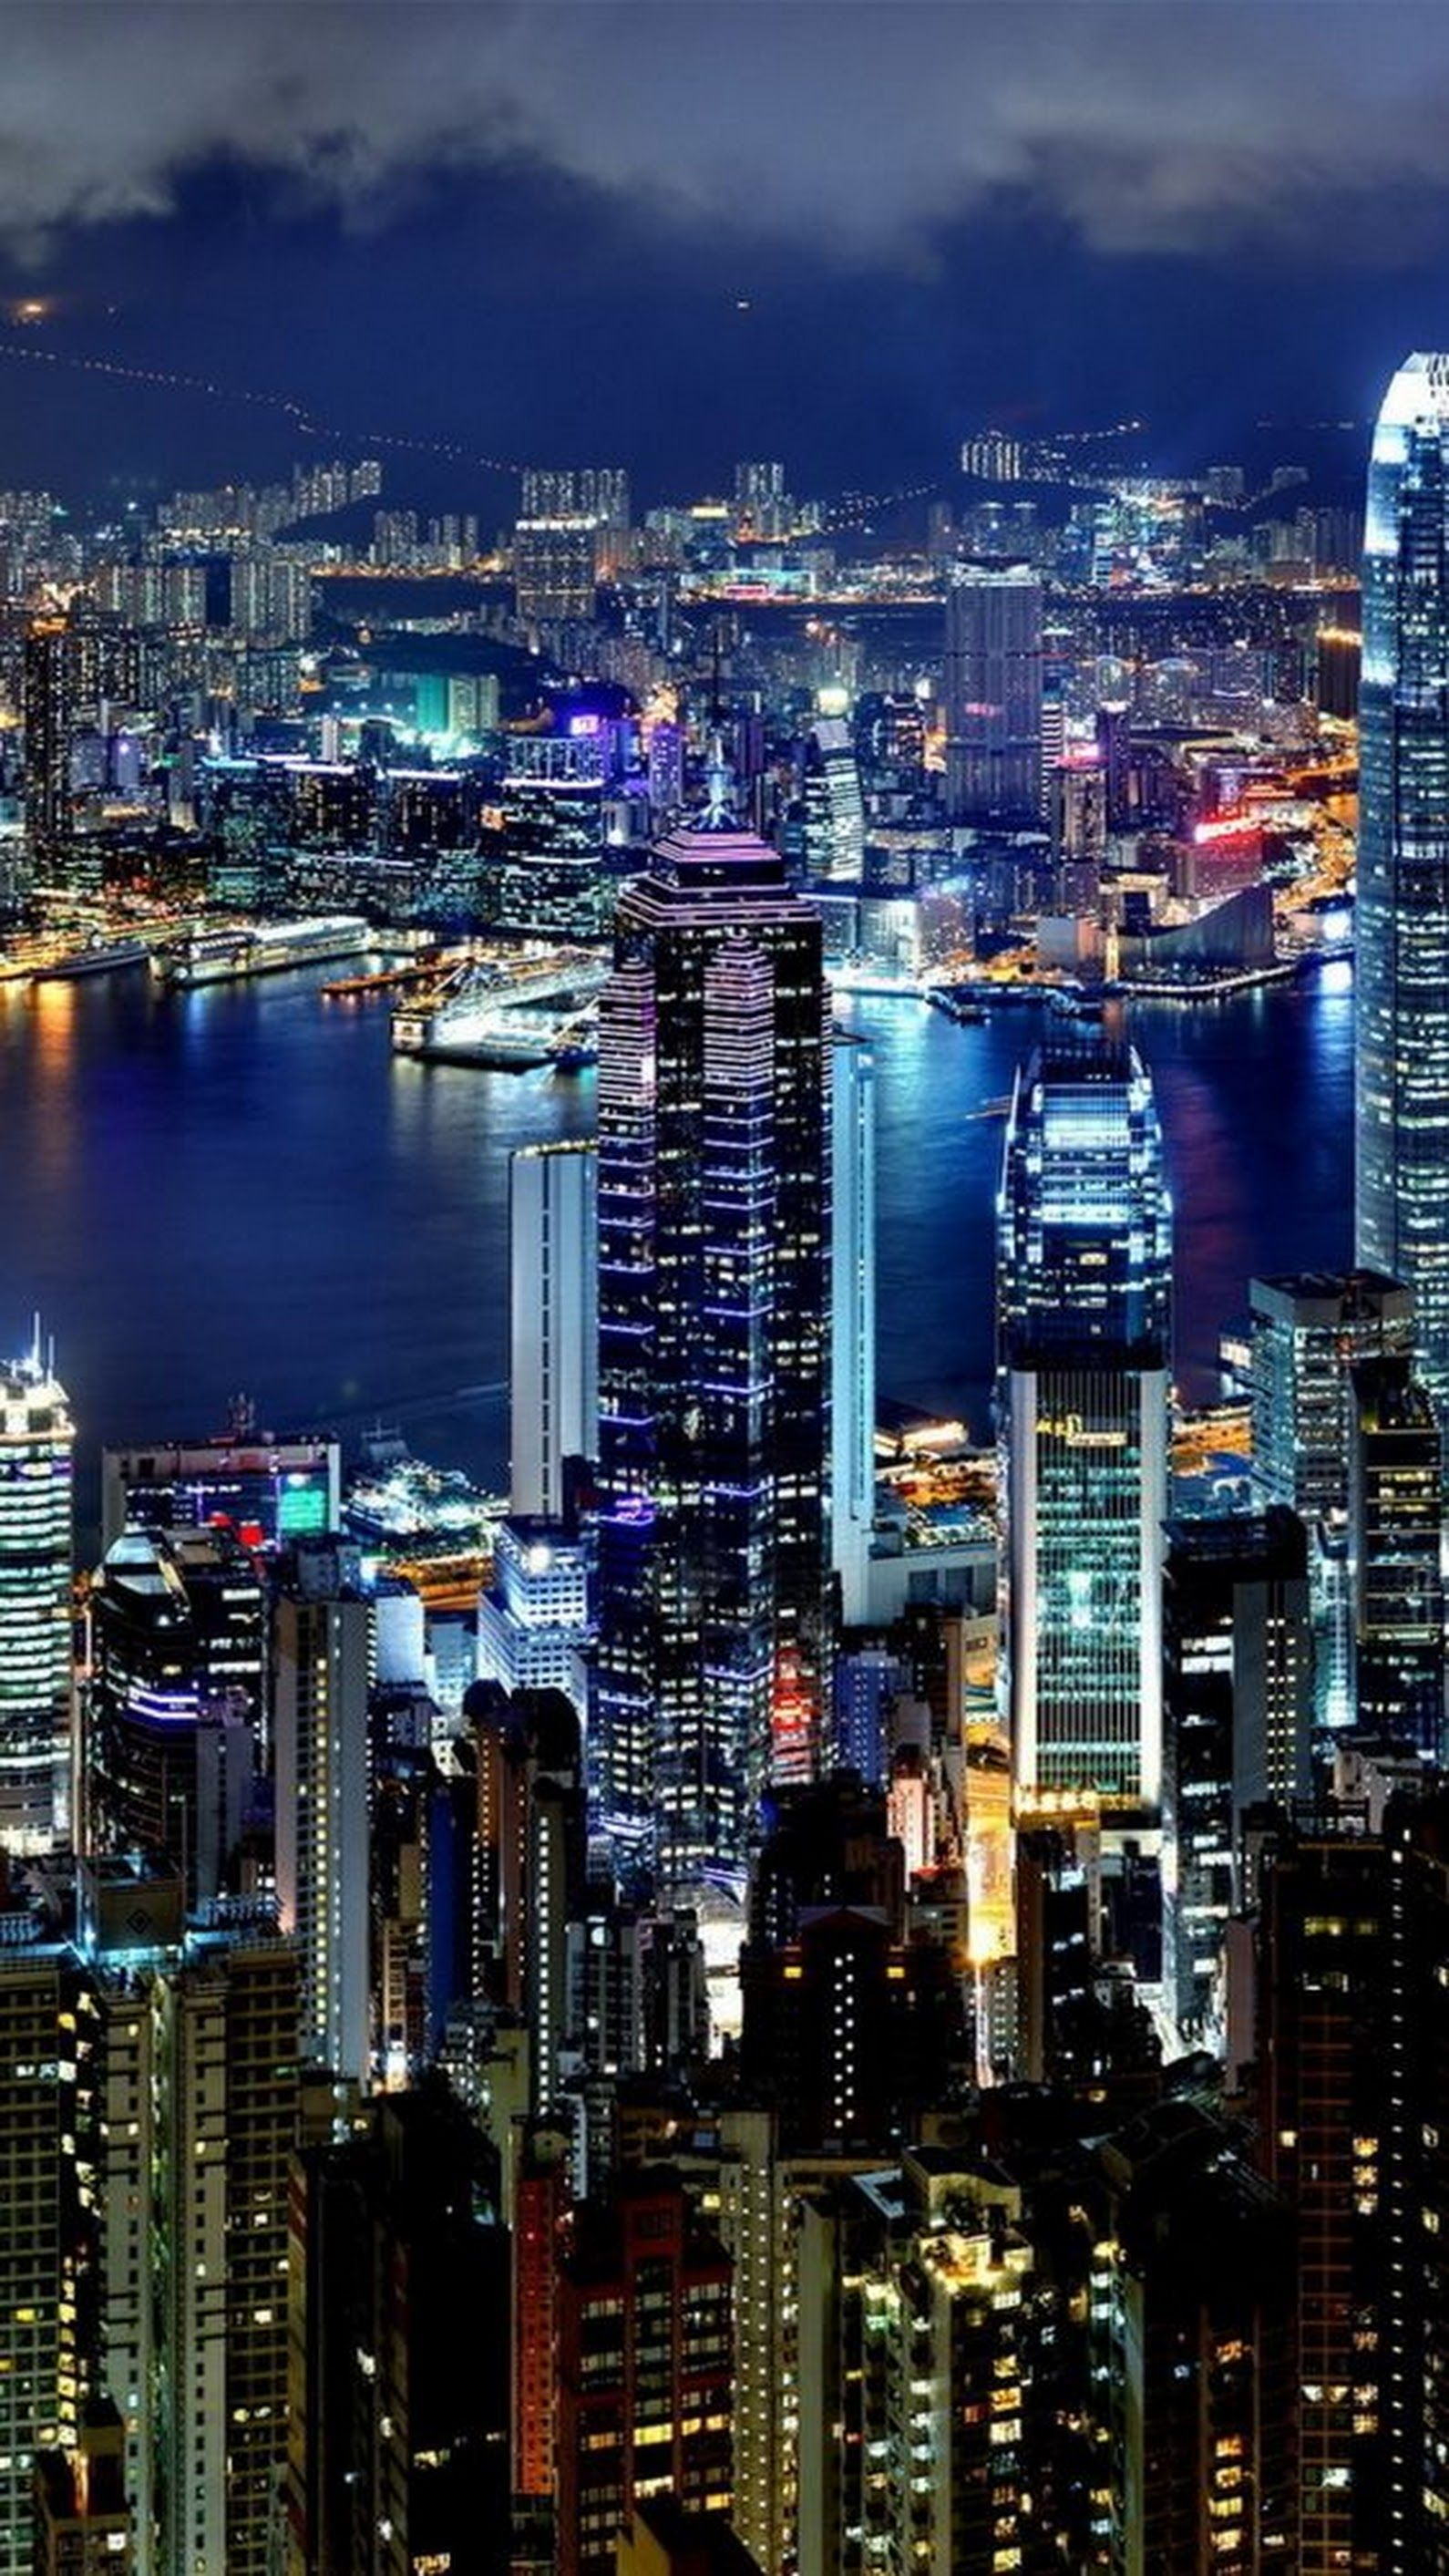 Hong Kong, City, Night, Lights........Quelle:flickr.com